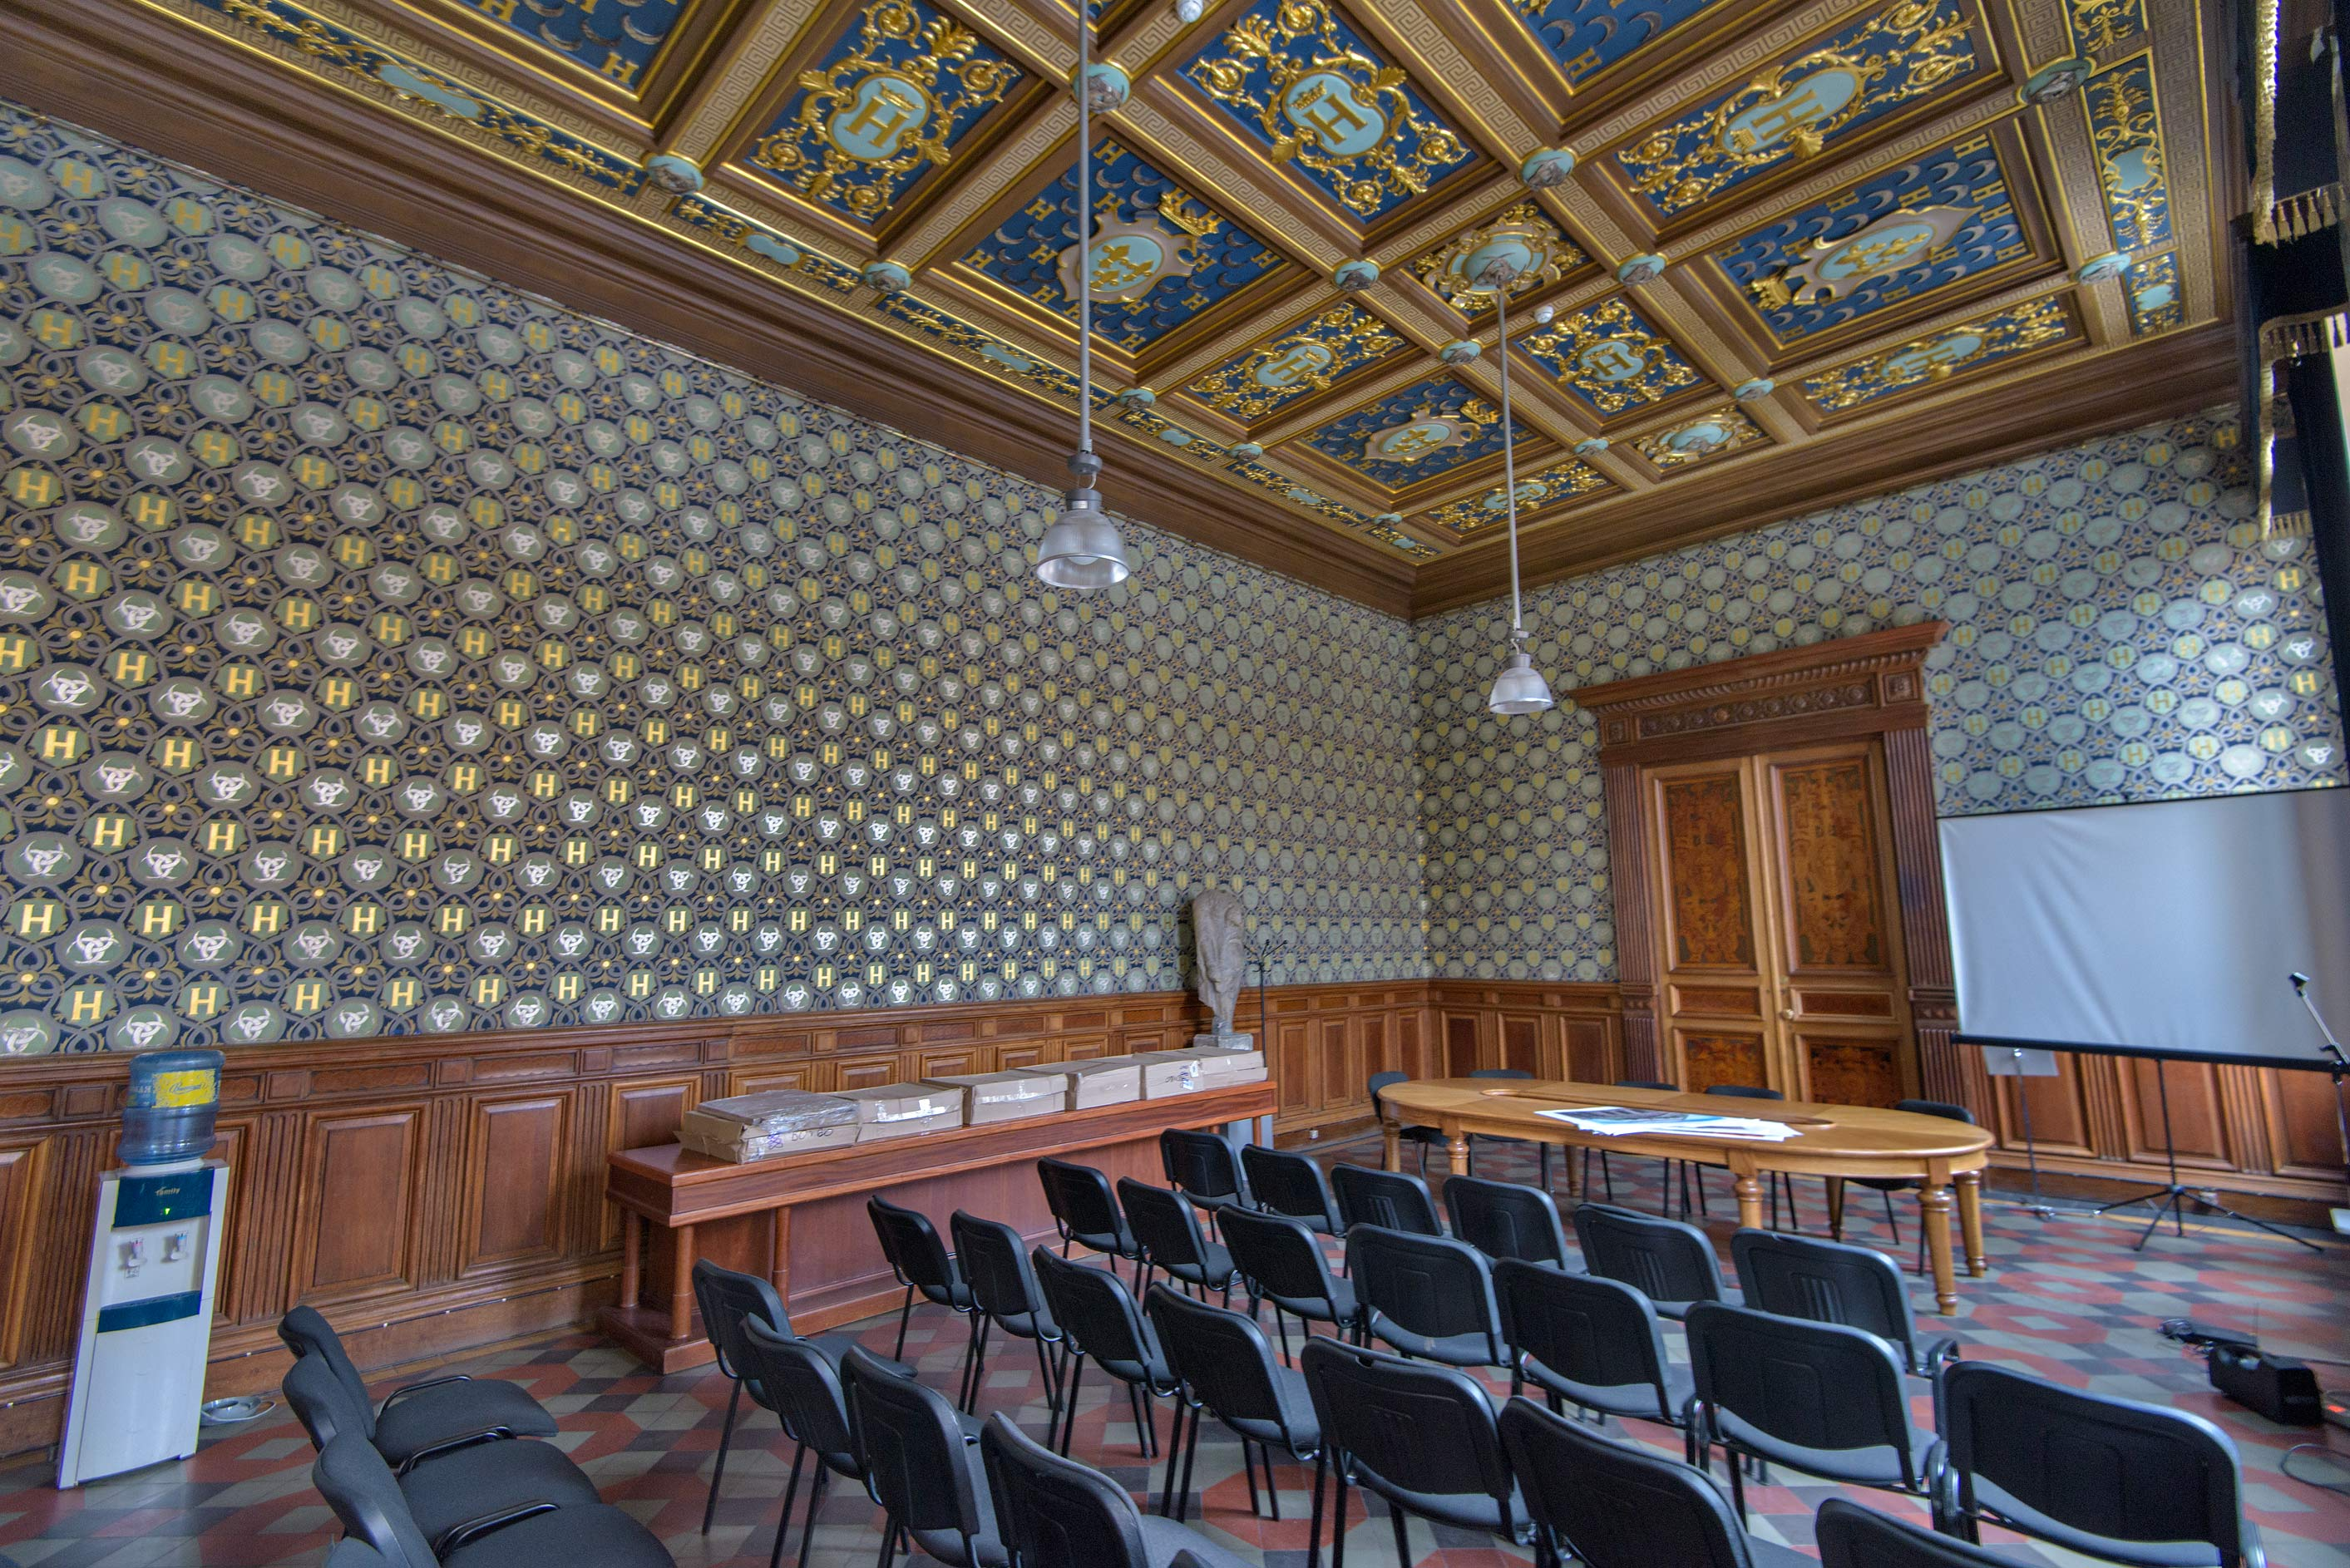 Student's auditorium of Mukhinskoe School in...of Applied Arts. St.Petersburg, Russia